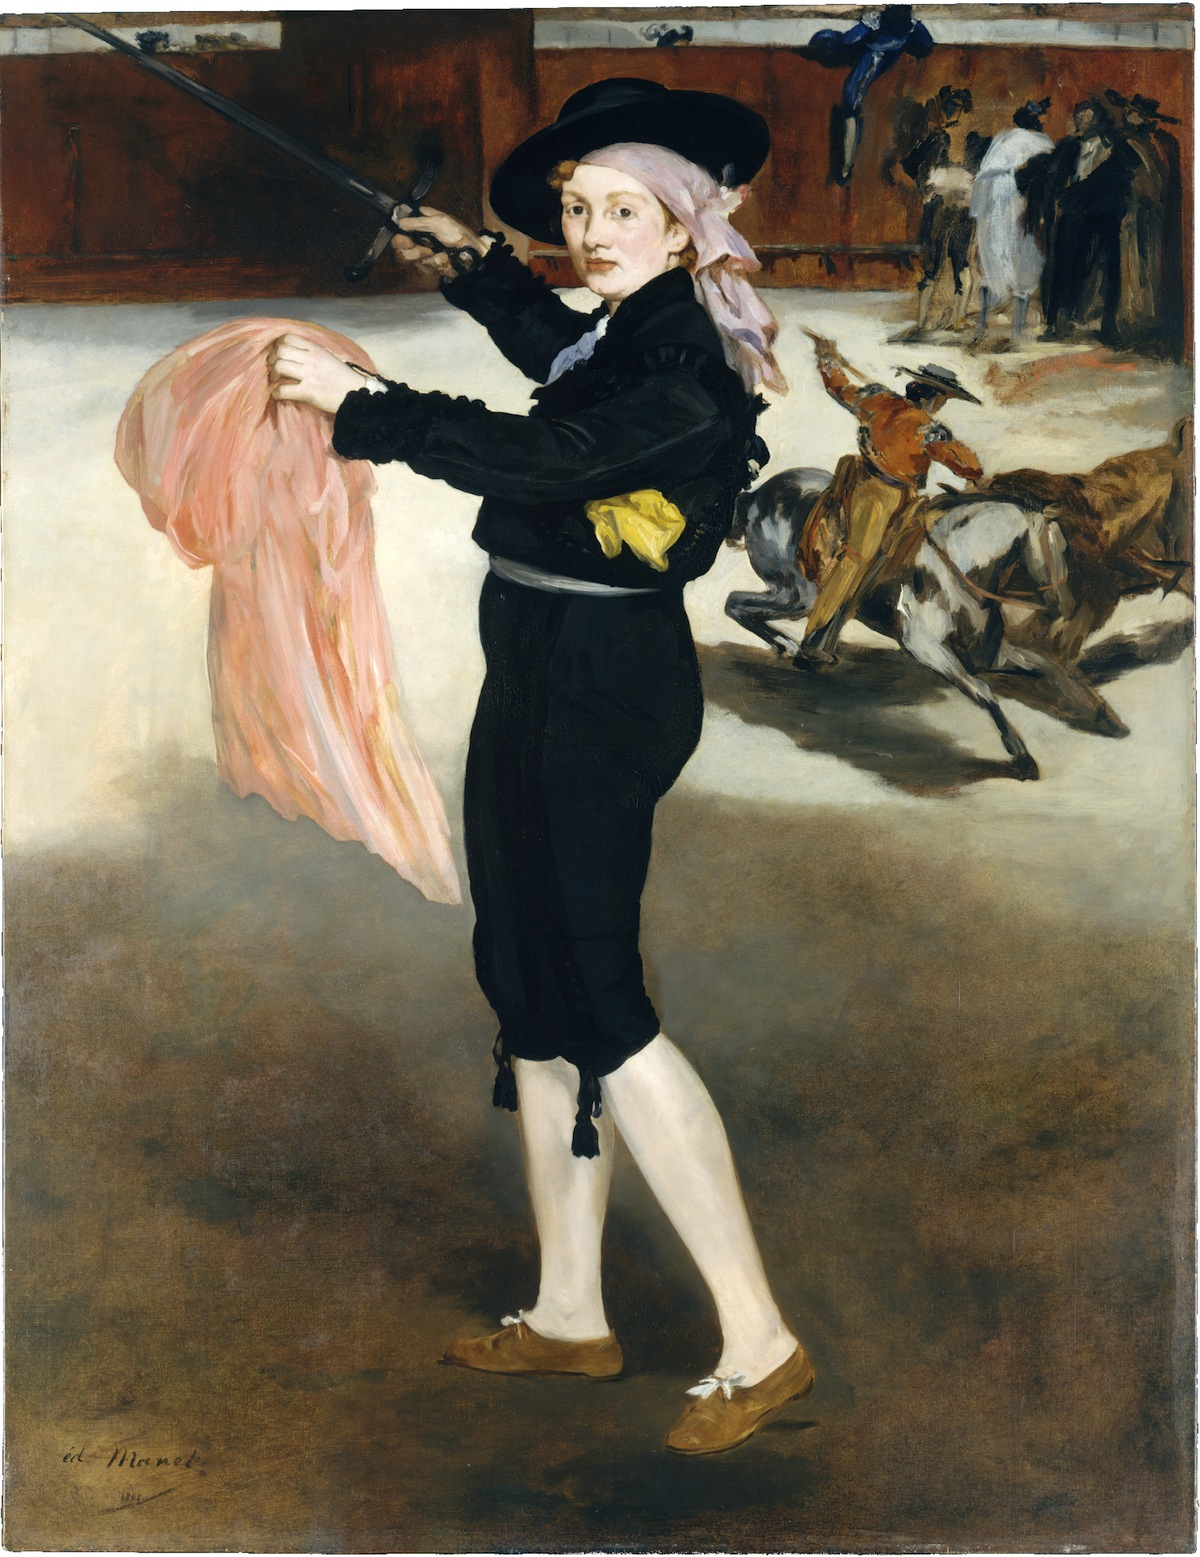 Edouard_Manet_-_Mlle_Victorine_Meurent_in_the_Costume_of_an_Espada